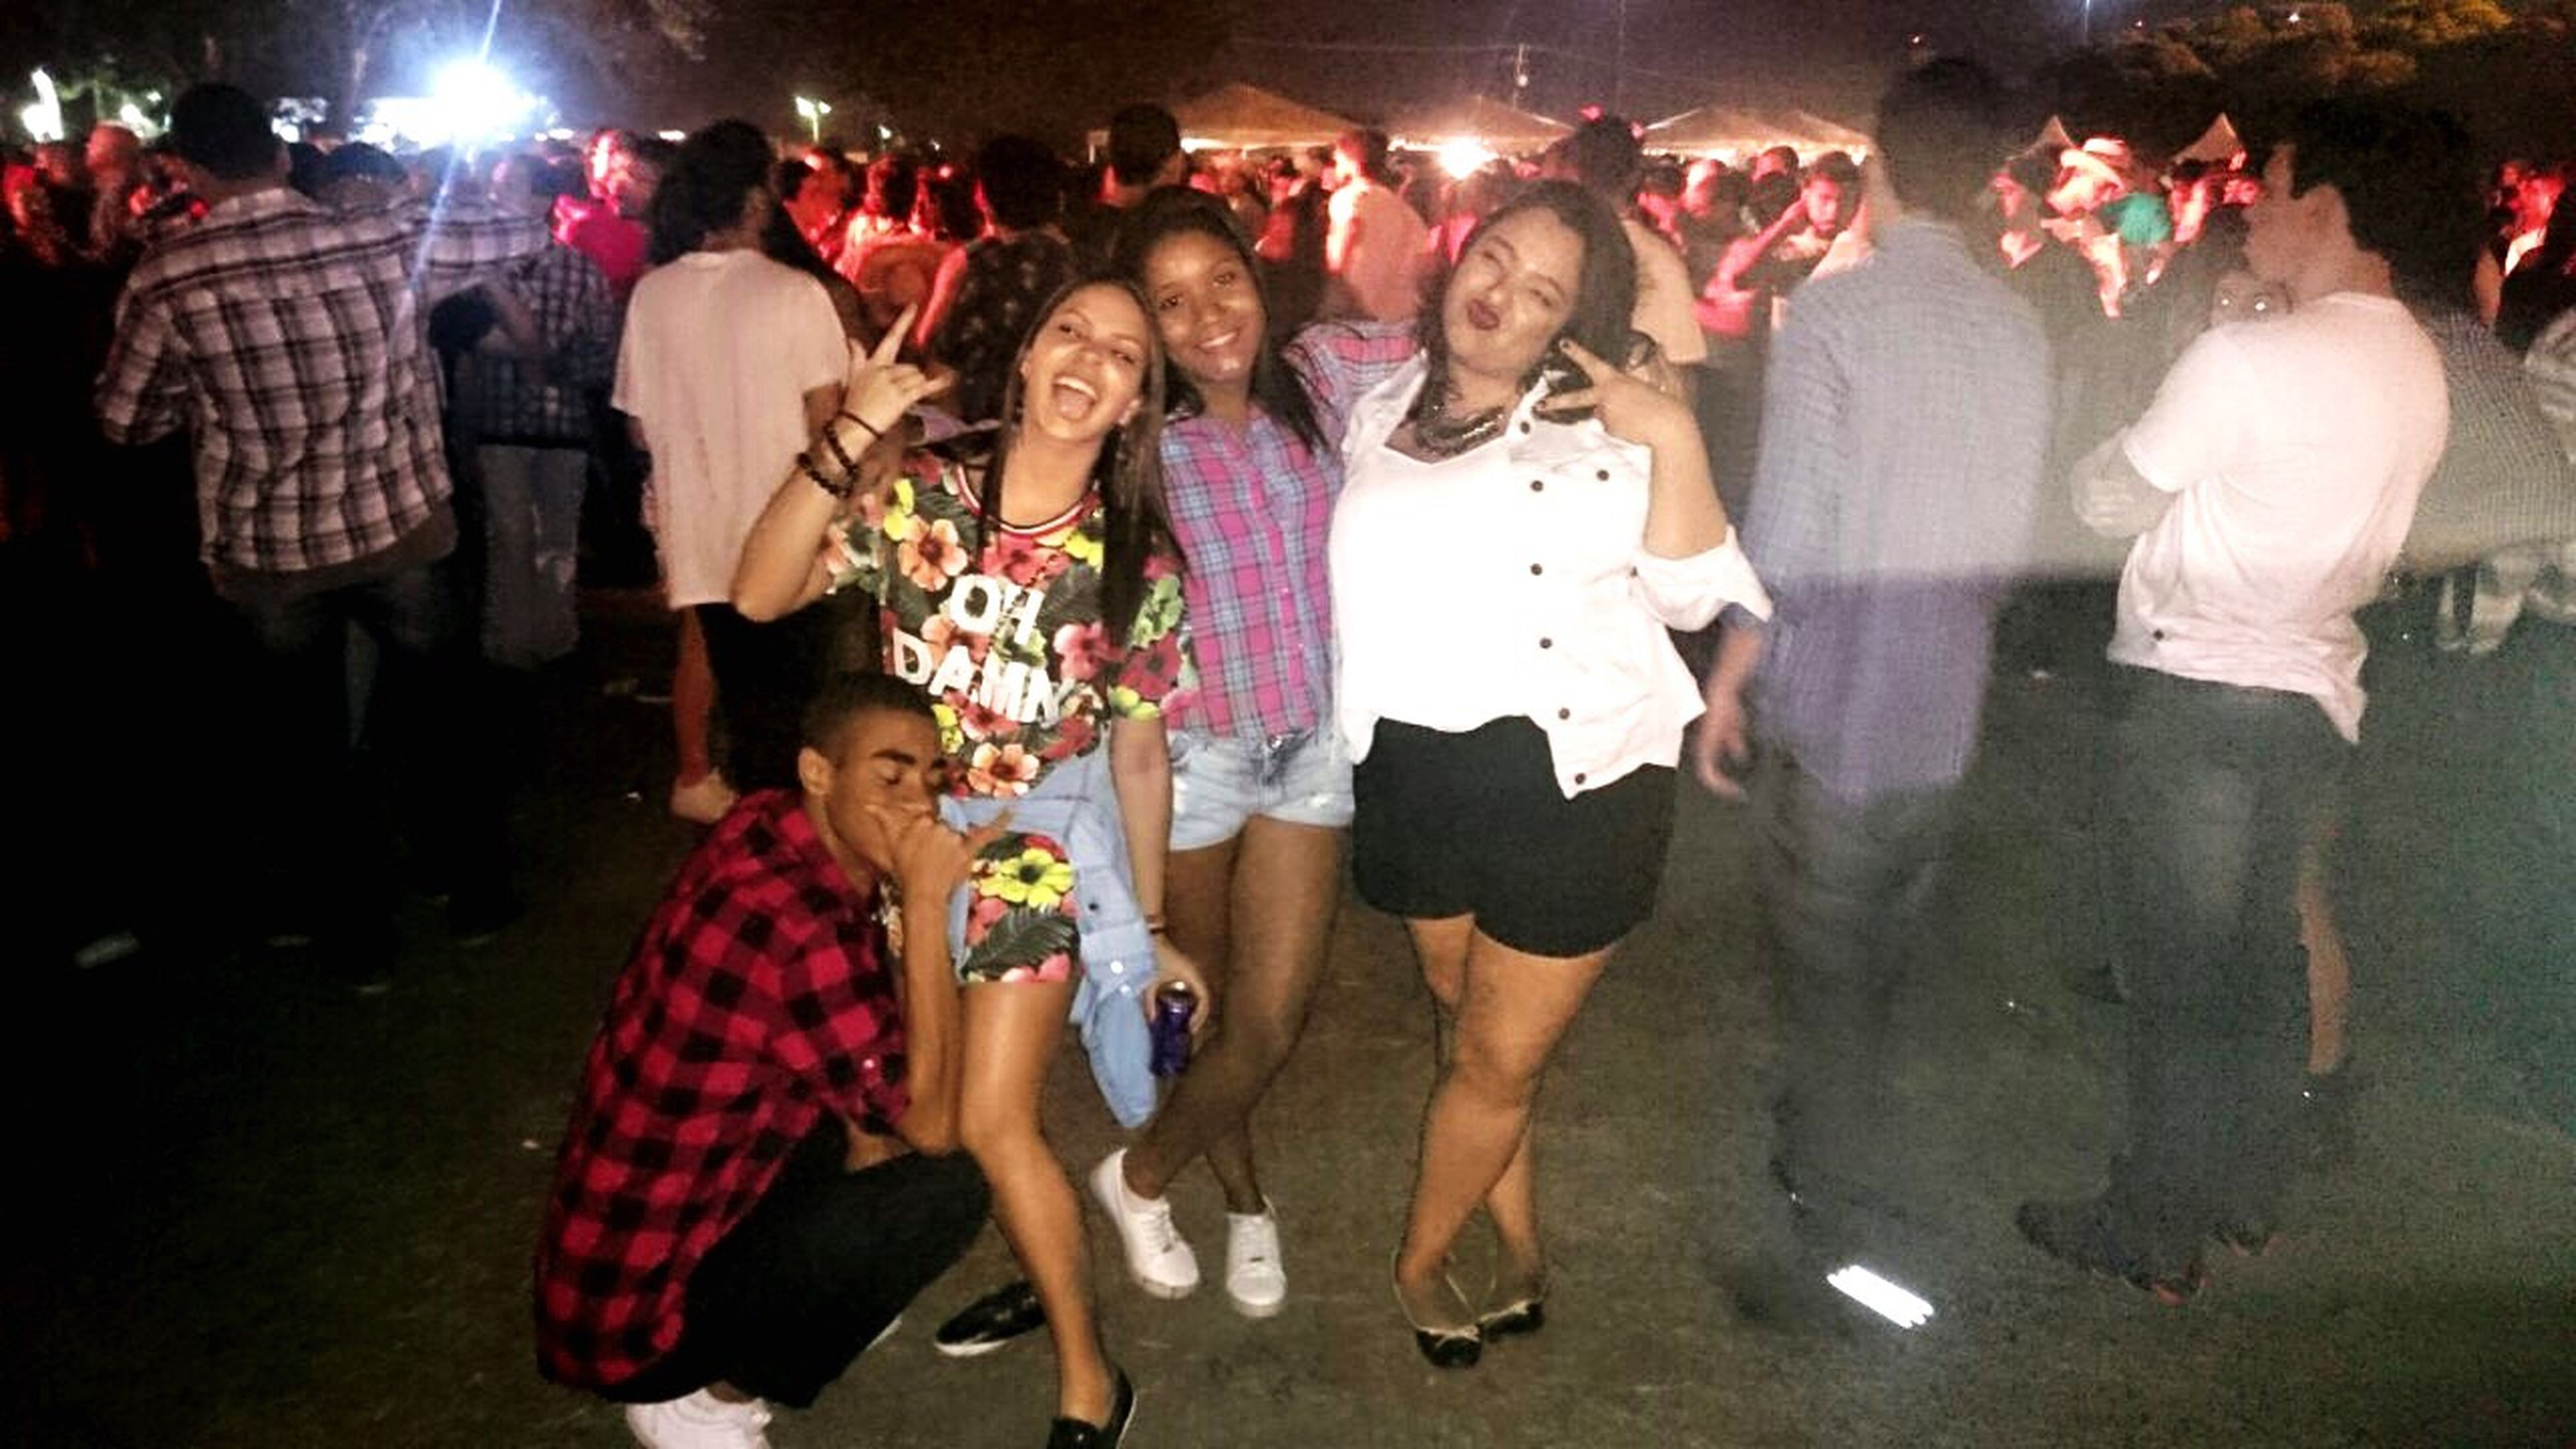 lifestyles, person, large group of people, leisure activity, illuminated, night, standing, celebration, crowd, enjoyment, casual clothing, arts culture and entertainment, performance, fun, event, nightlife, dancing, cultures